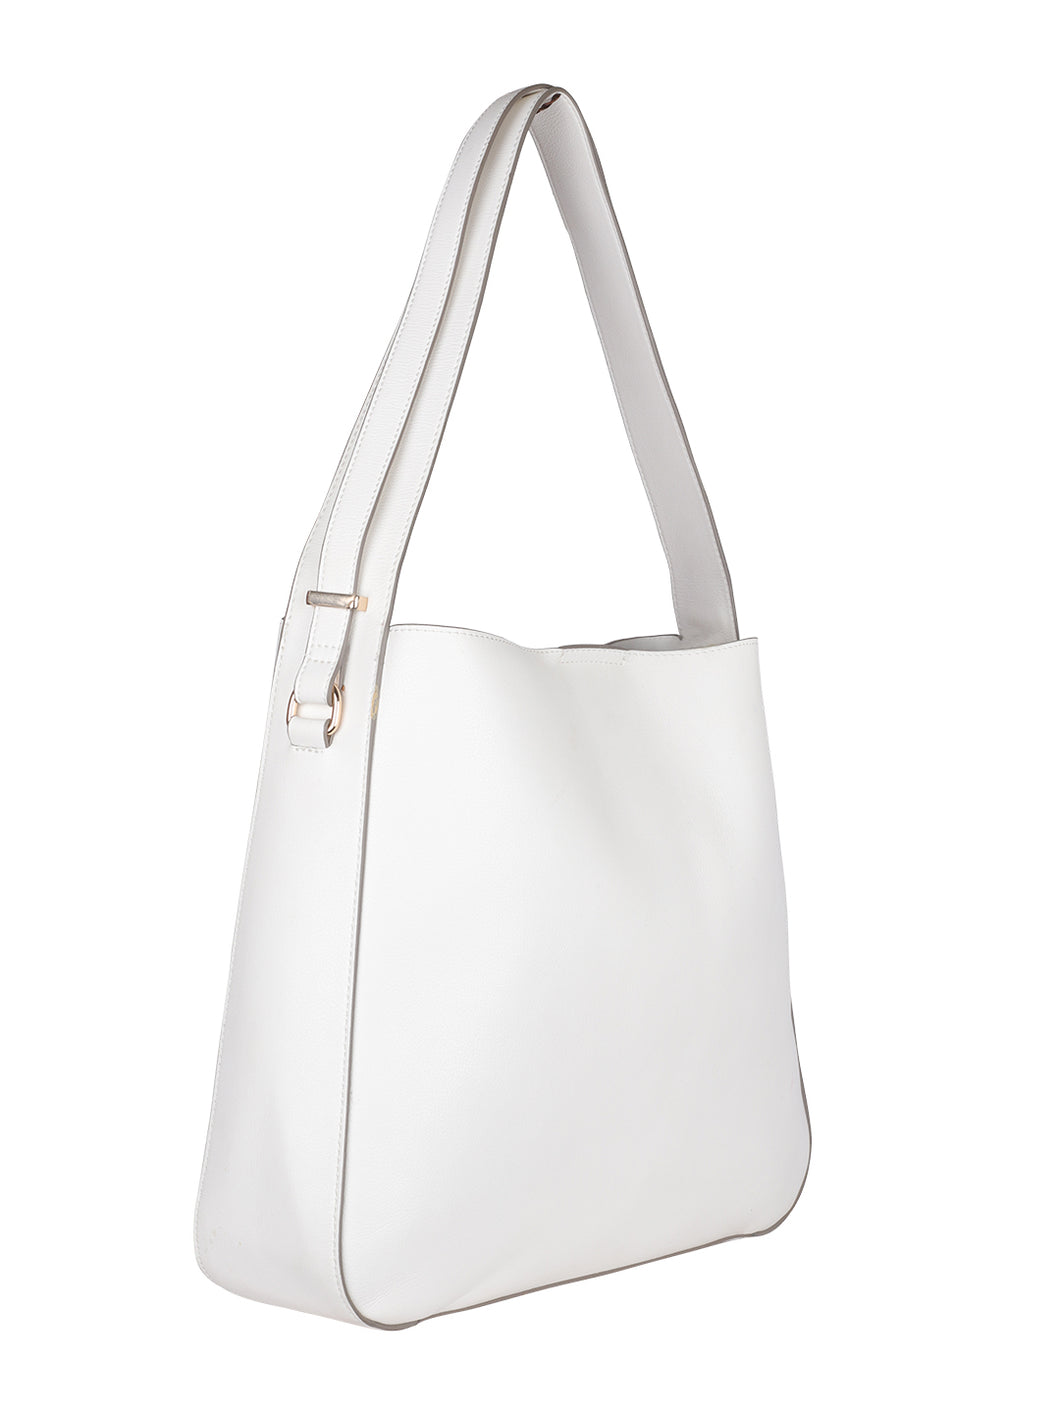 Big Girl Handbag-White